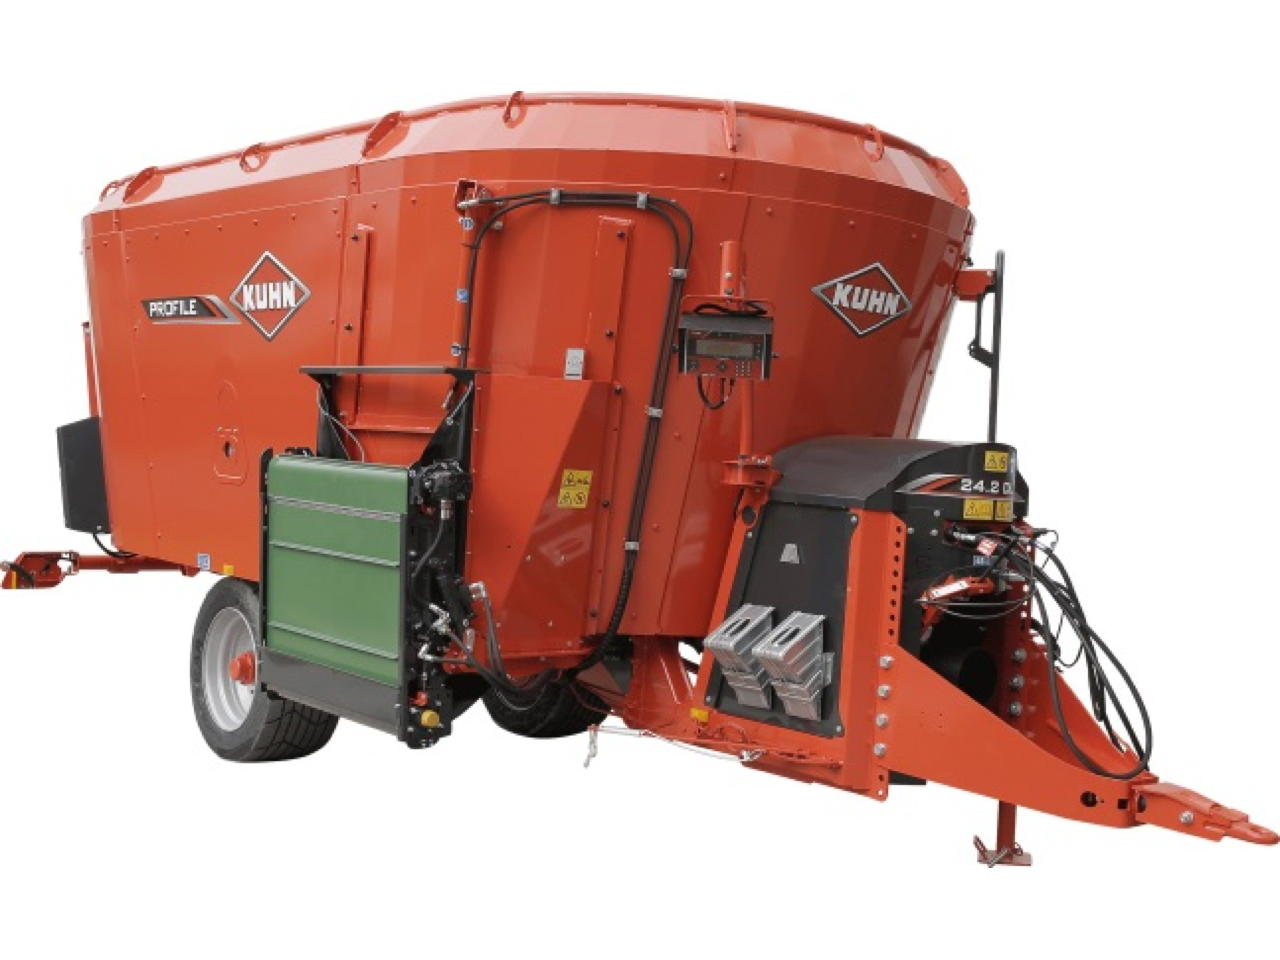 Kuhn Profile 2 DL Profile 30.2 DL